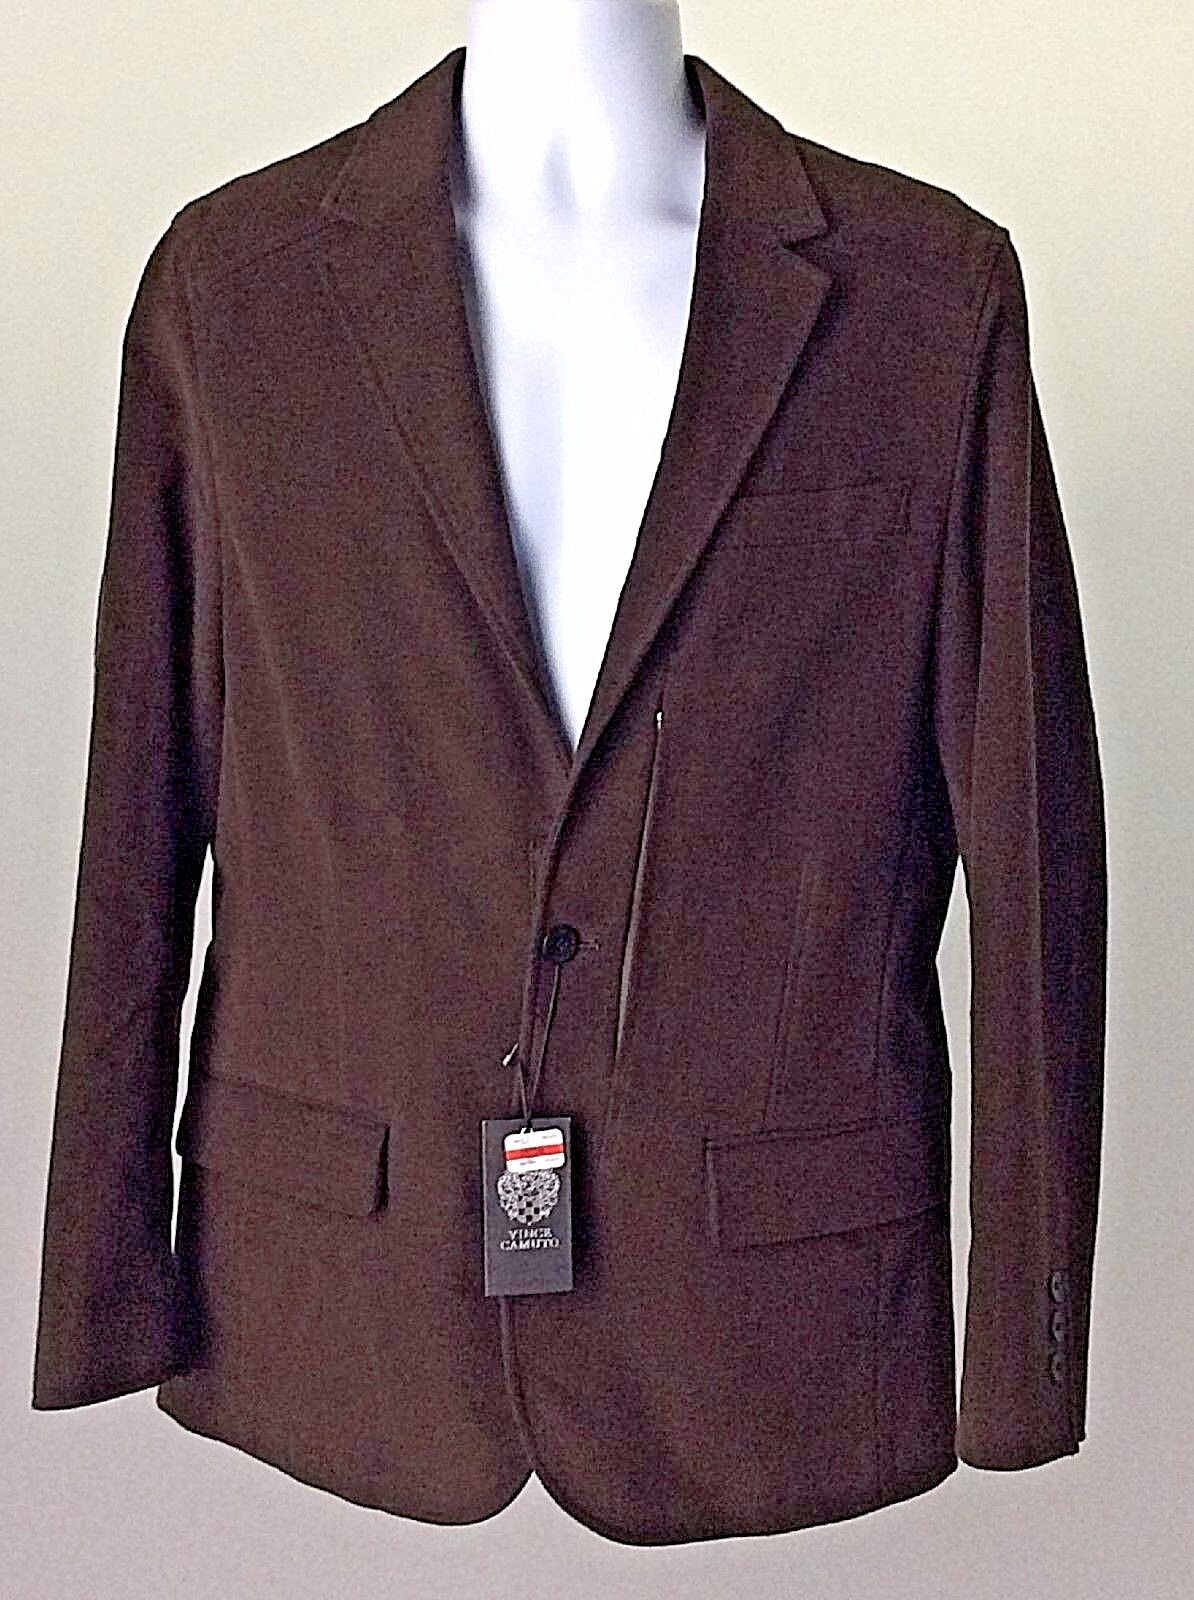 Vince Camuto Brown Removable liner 2-Button Blazer Size Medium NWT